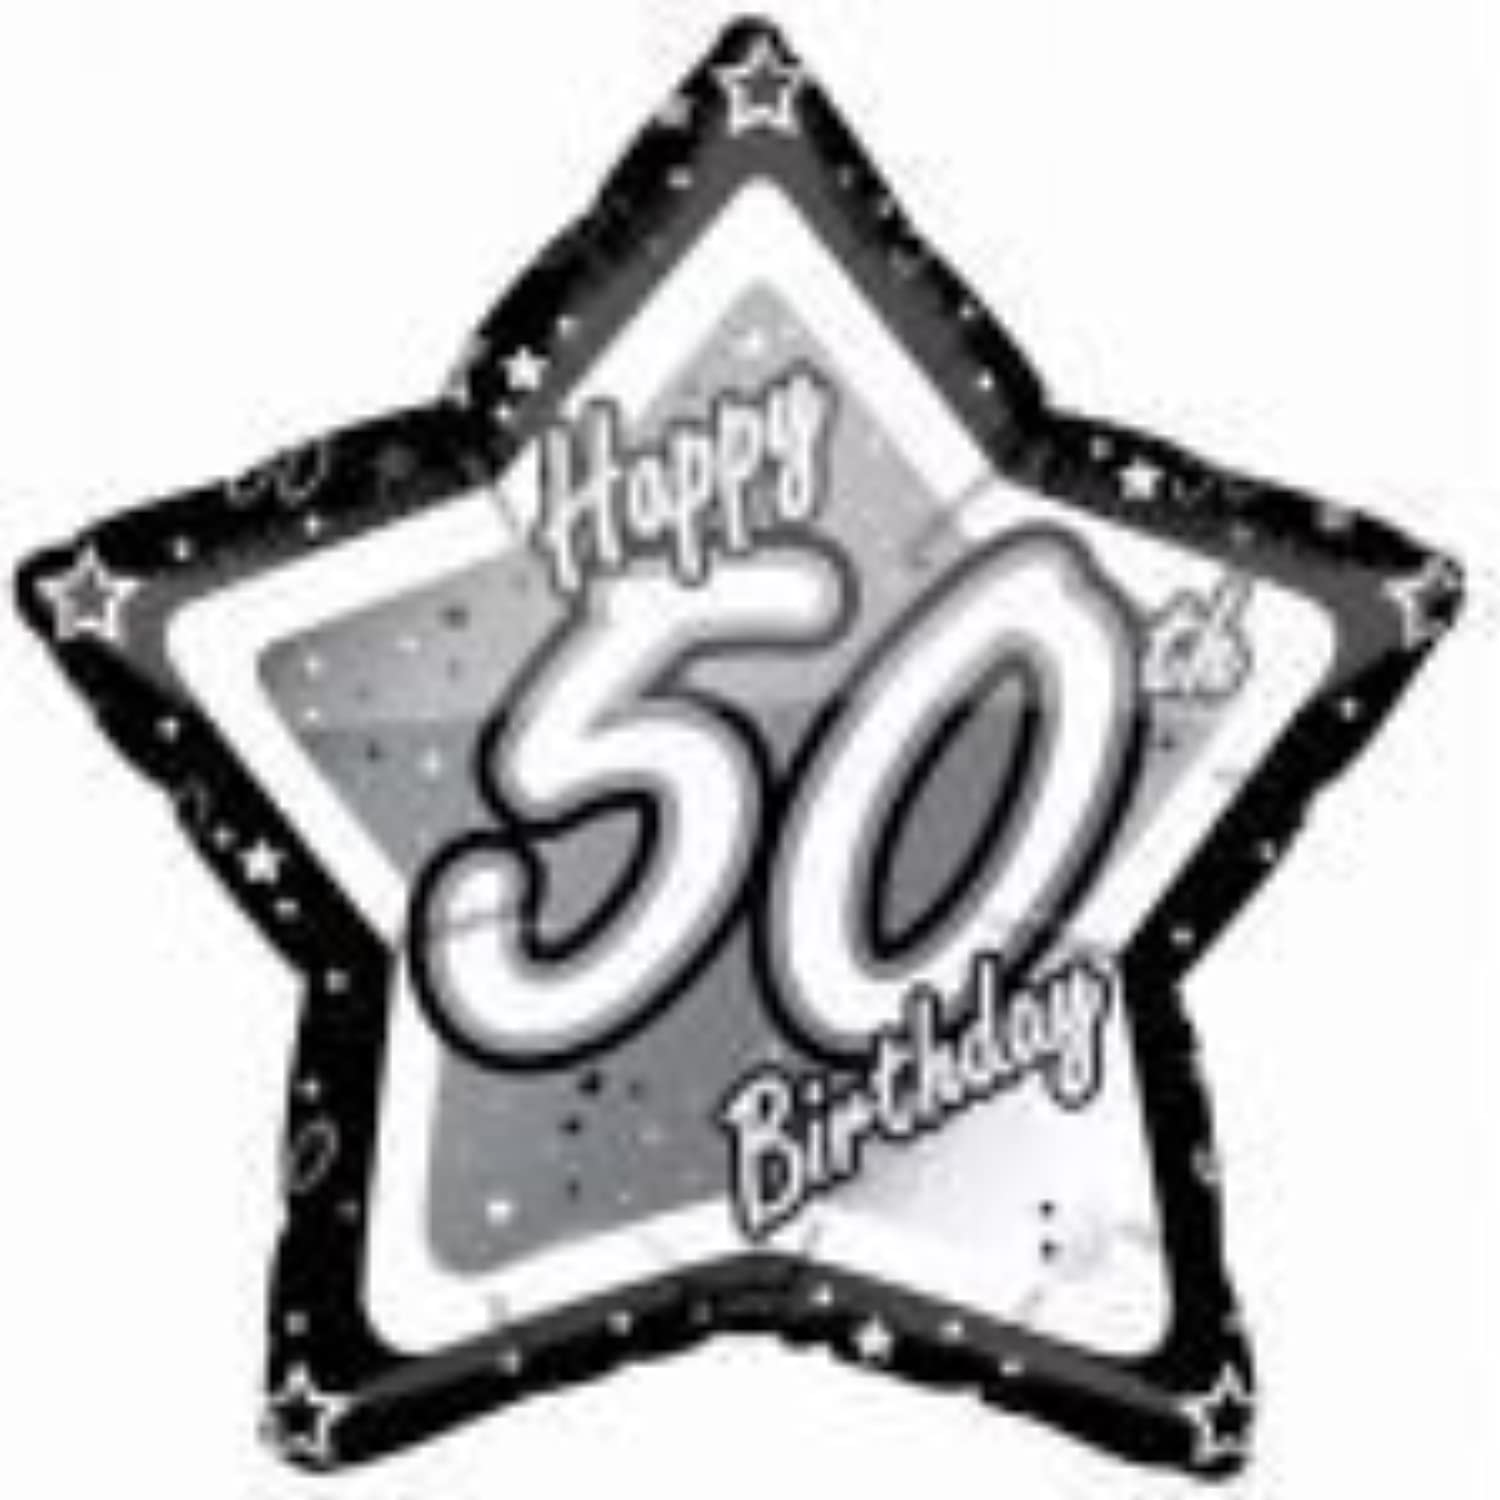 Black & Silver Age 50 Star Foil balloon by Party2u